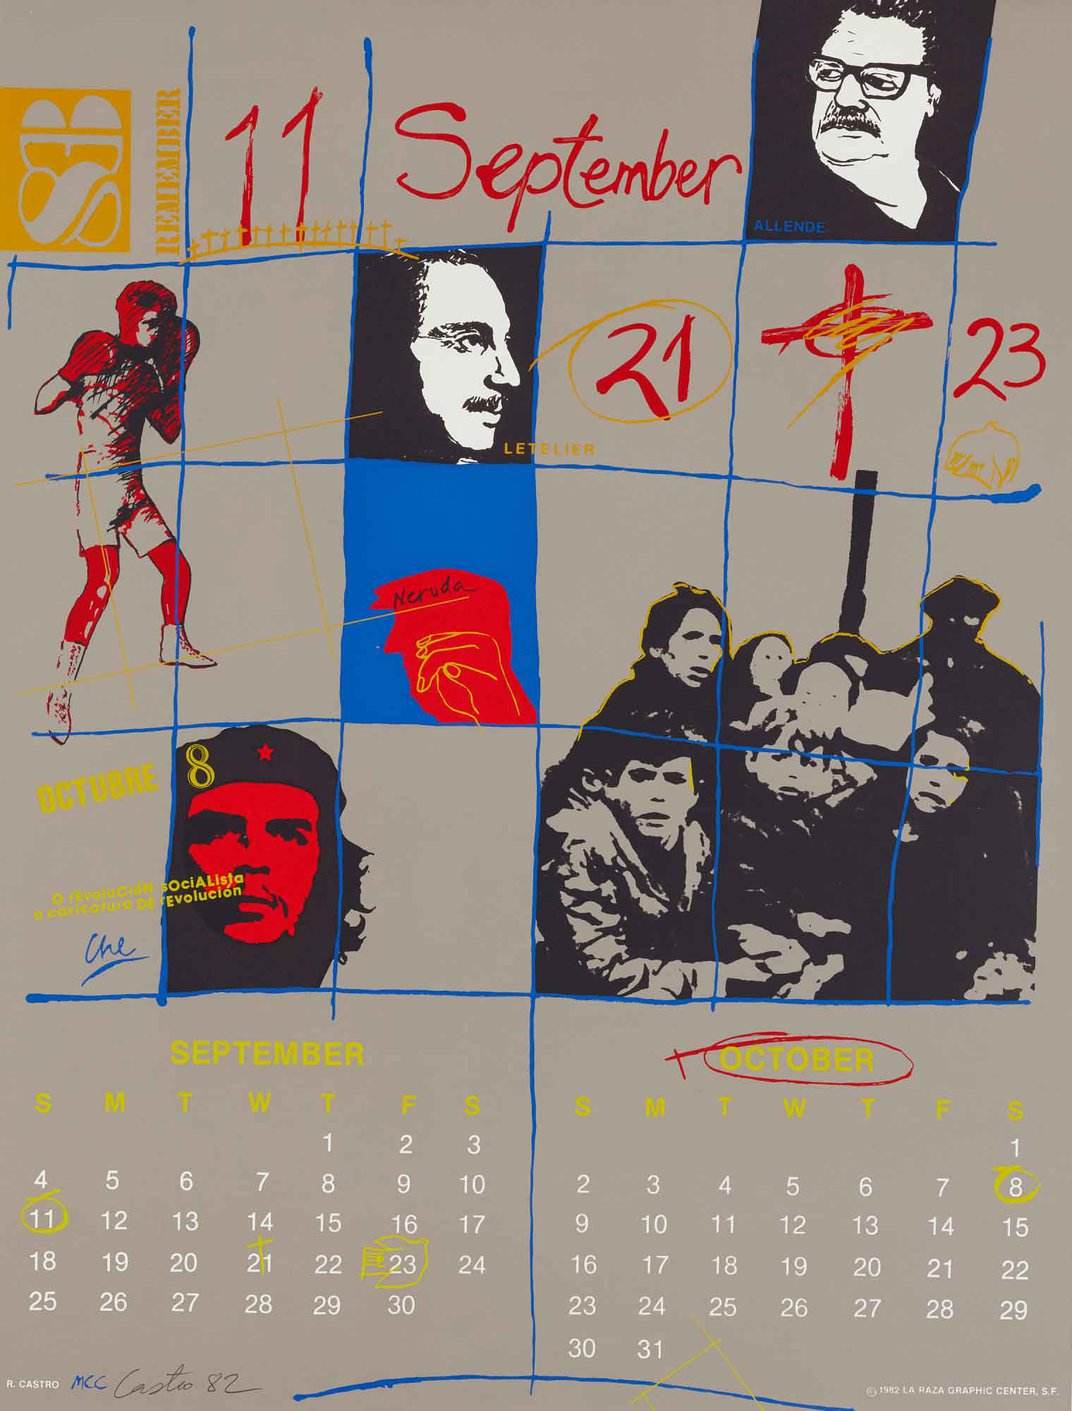 Calendar page showing different historical figures